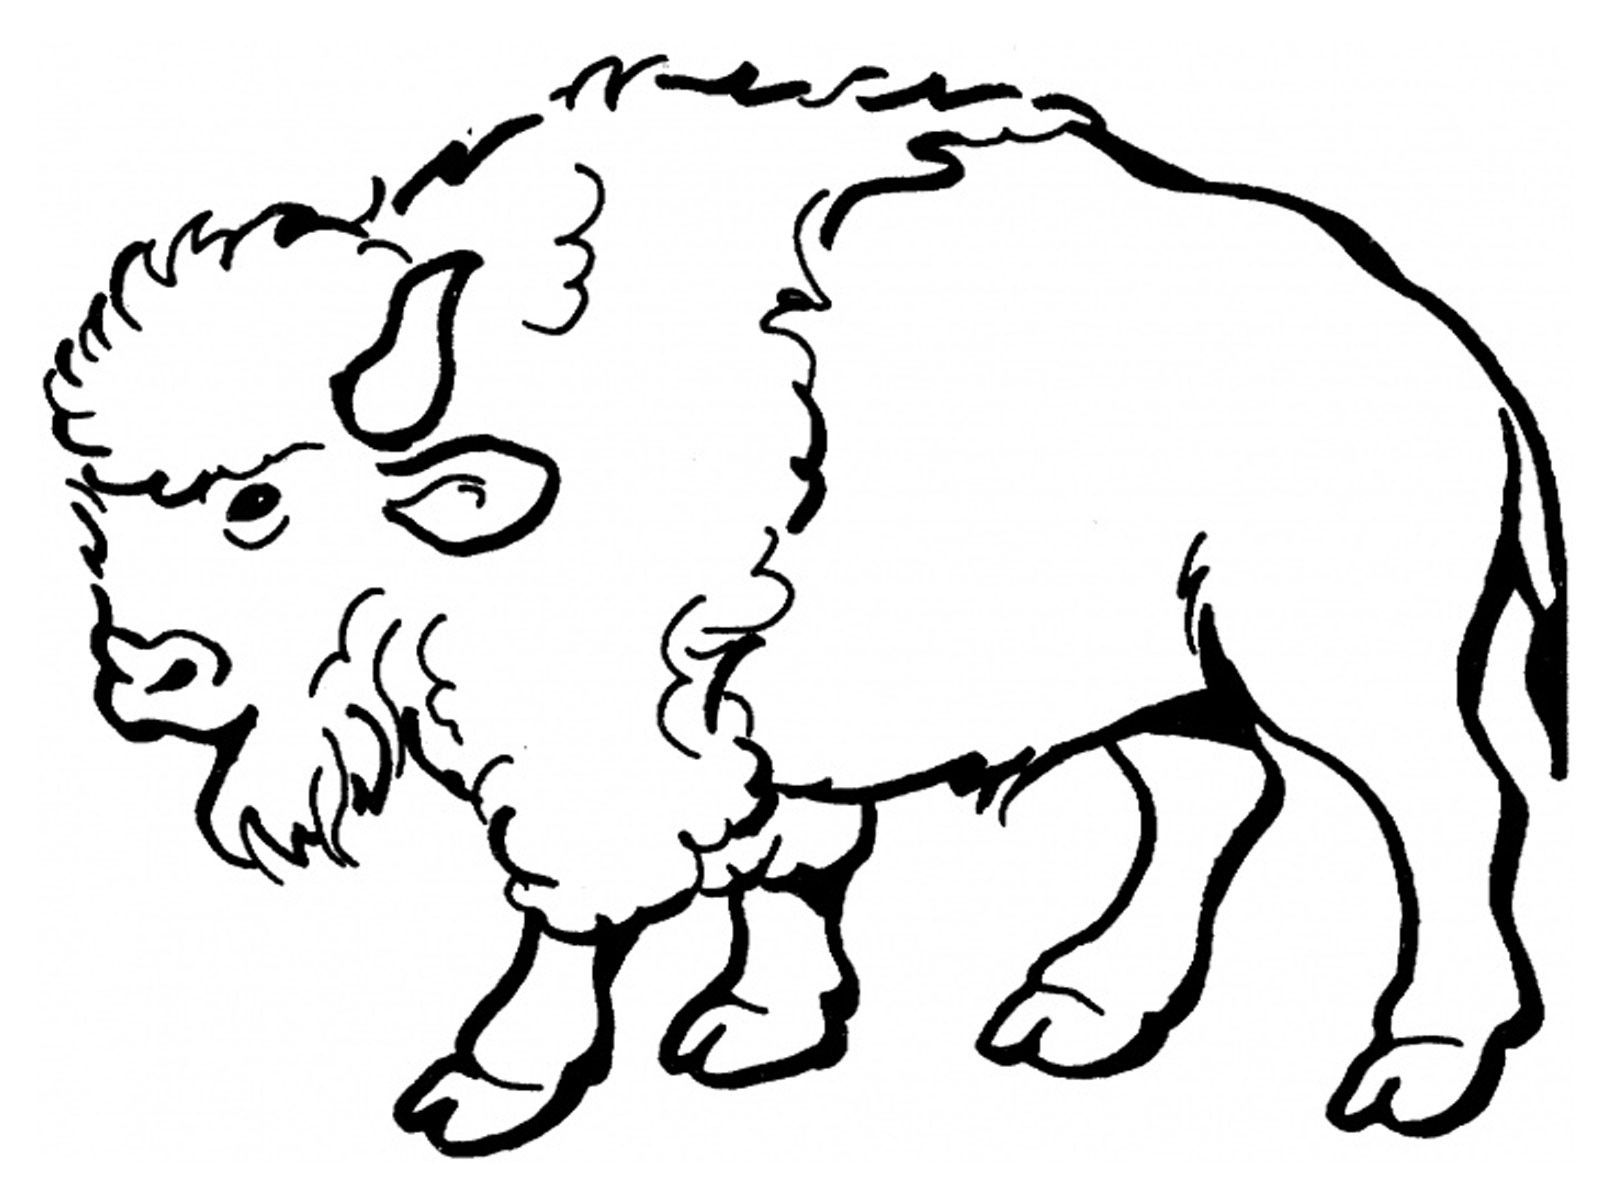 Free Printable Bison Coloring Pages For Kids Silhouettes Easy art